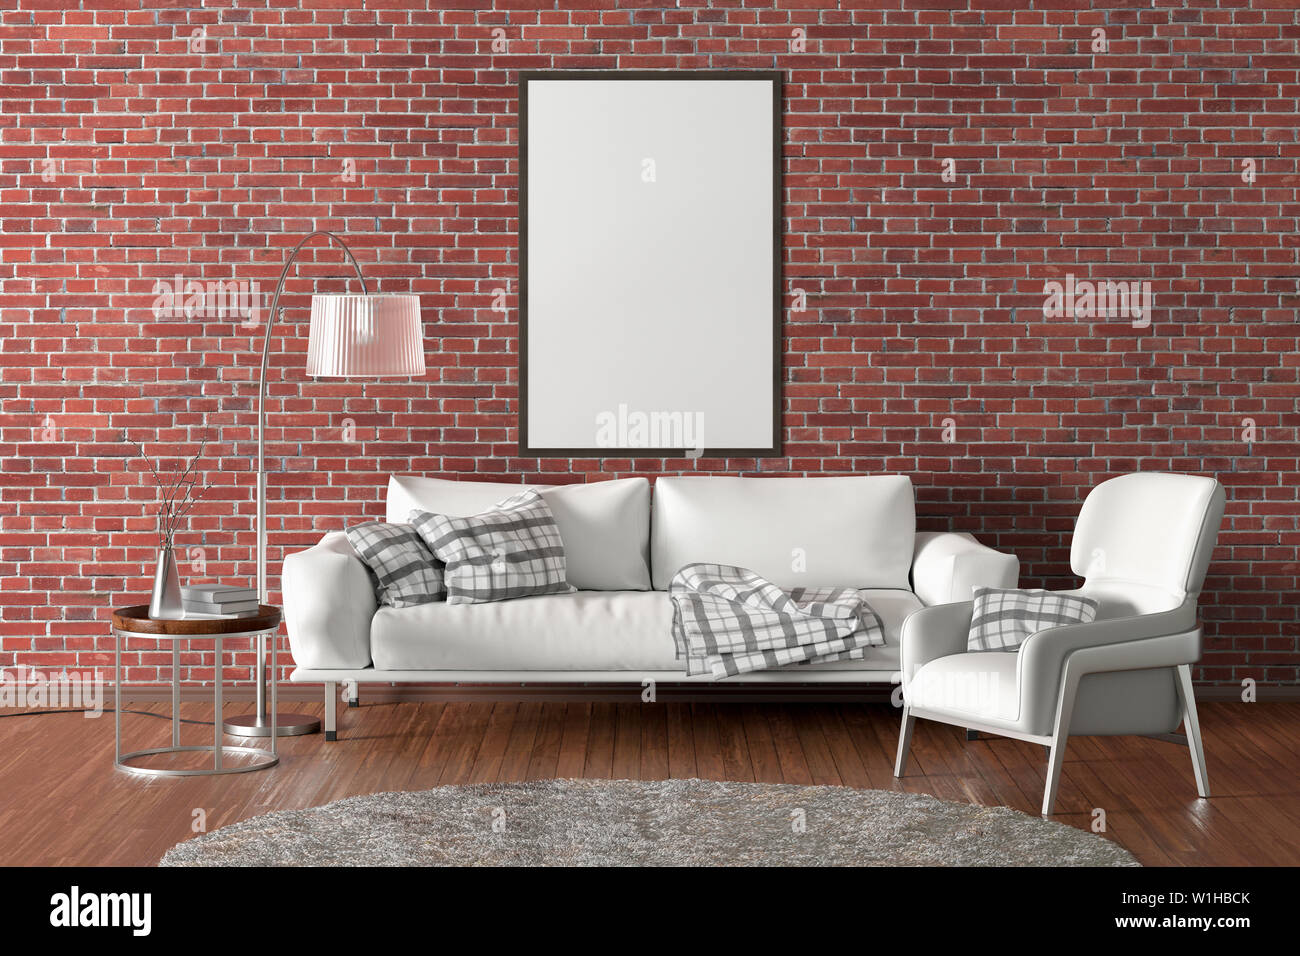 Vertical Blank Poster On Red Brick Wall In Interior Of Modern